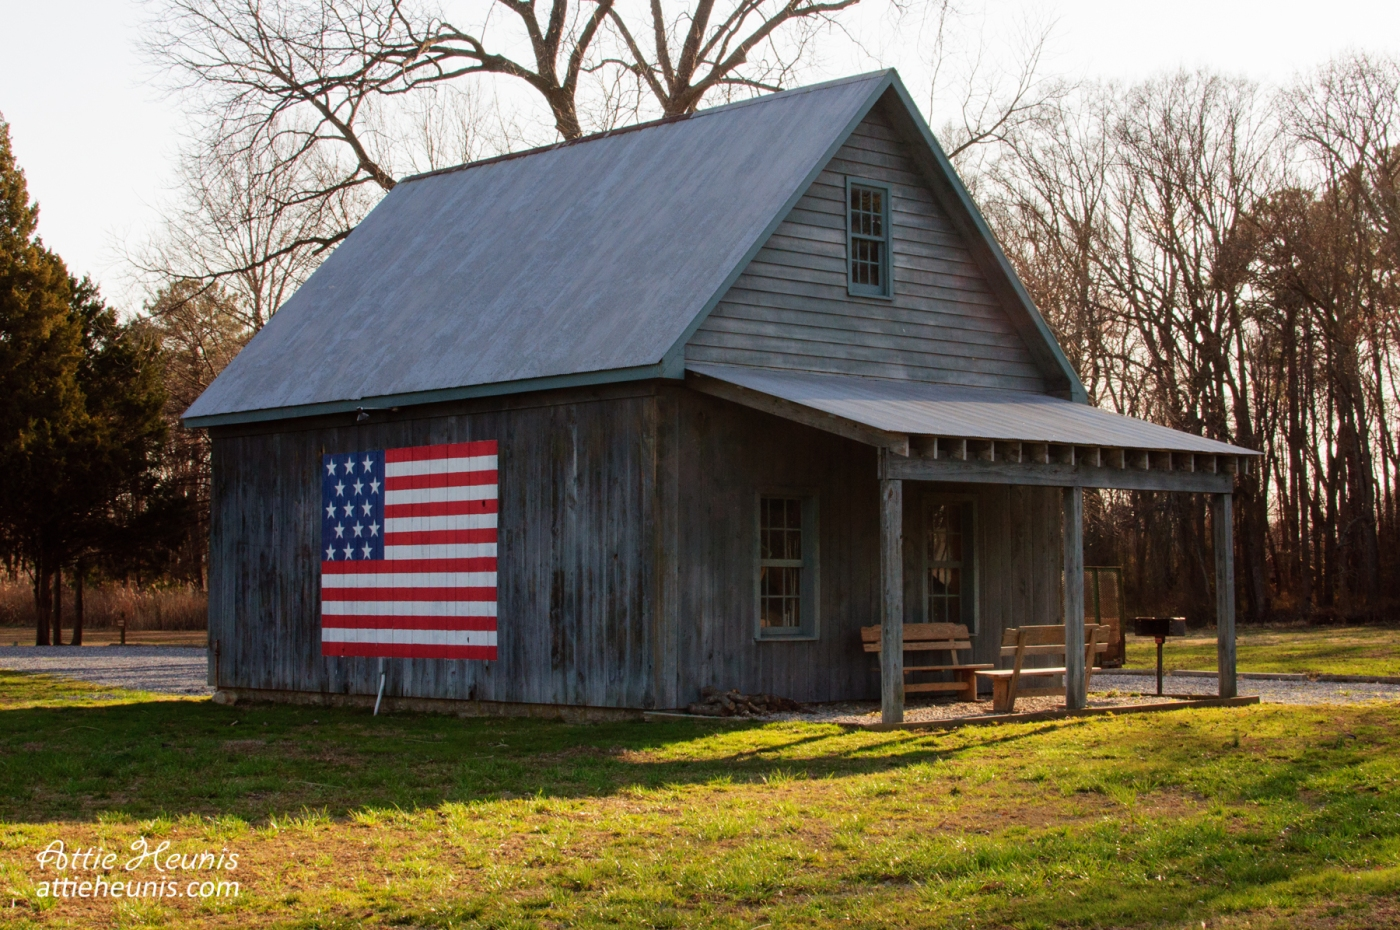 USA flag on cabin